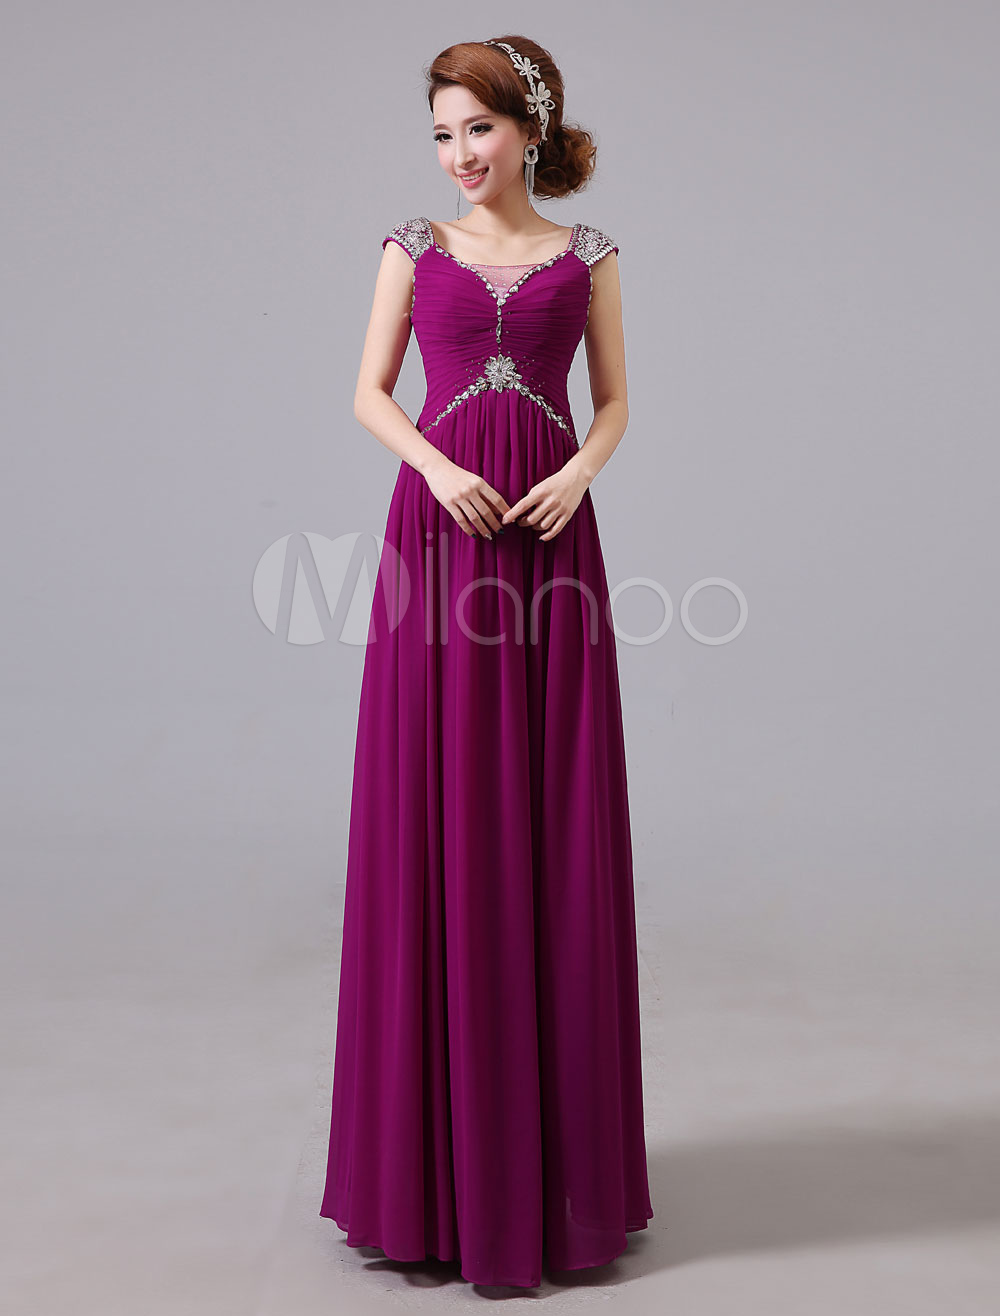 b0daffdf3 Evening Dresses Formal Chiffon Long Prom Dress Beading Ruched Floor Length  Special Occasion Dress (Wedding